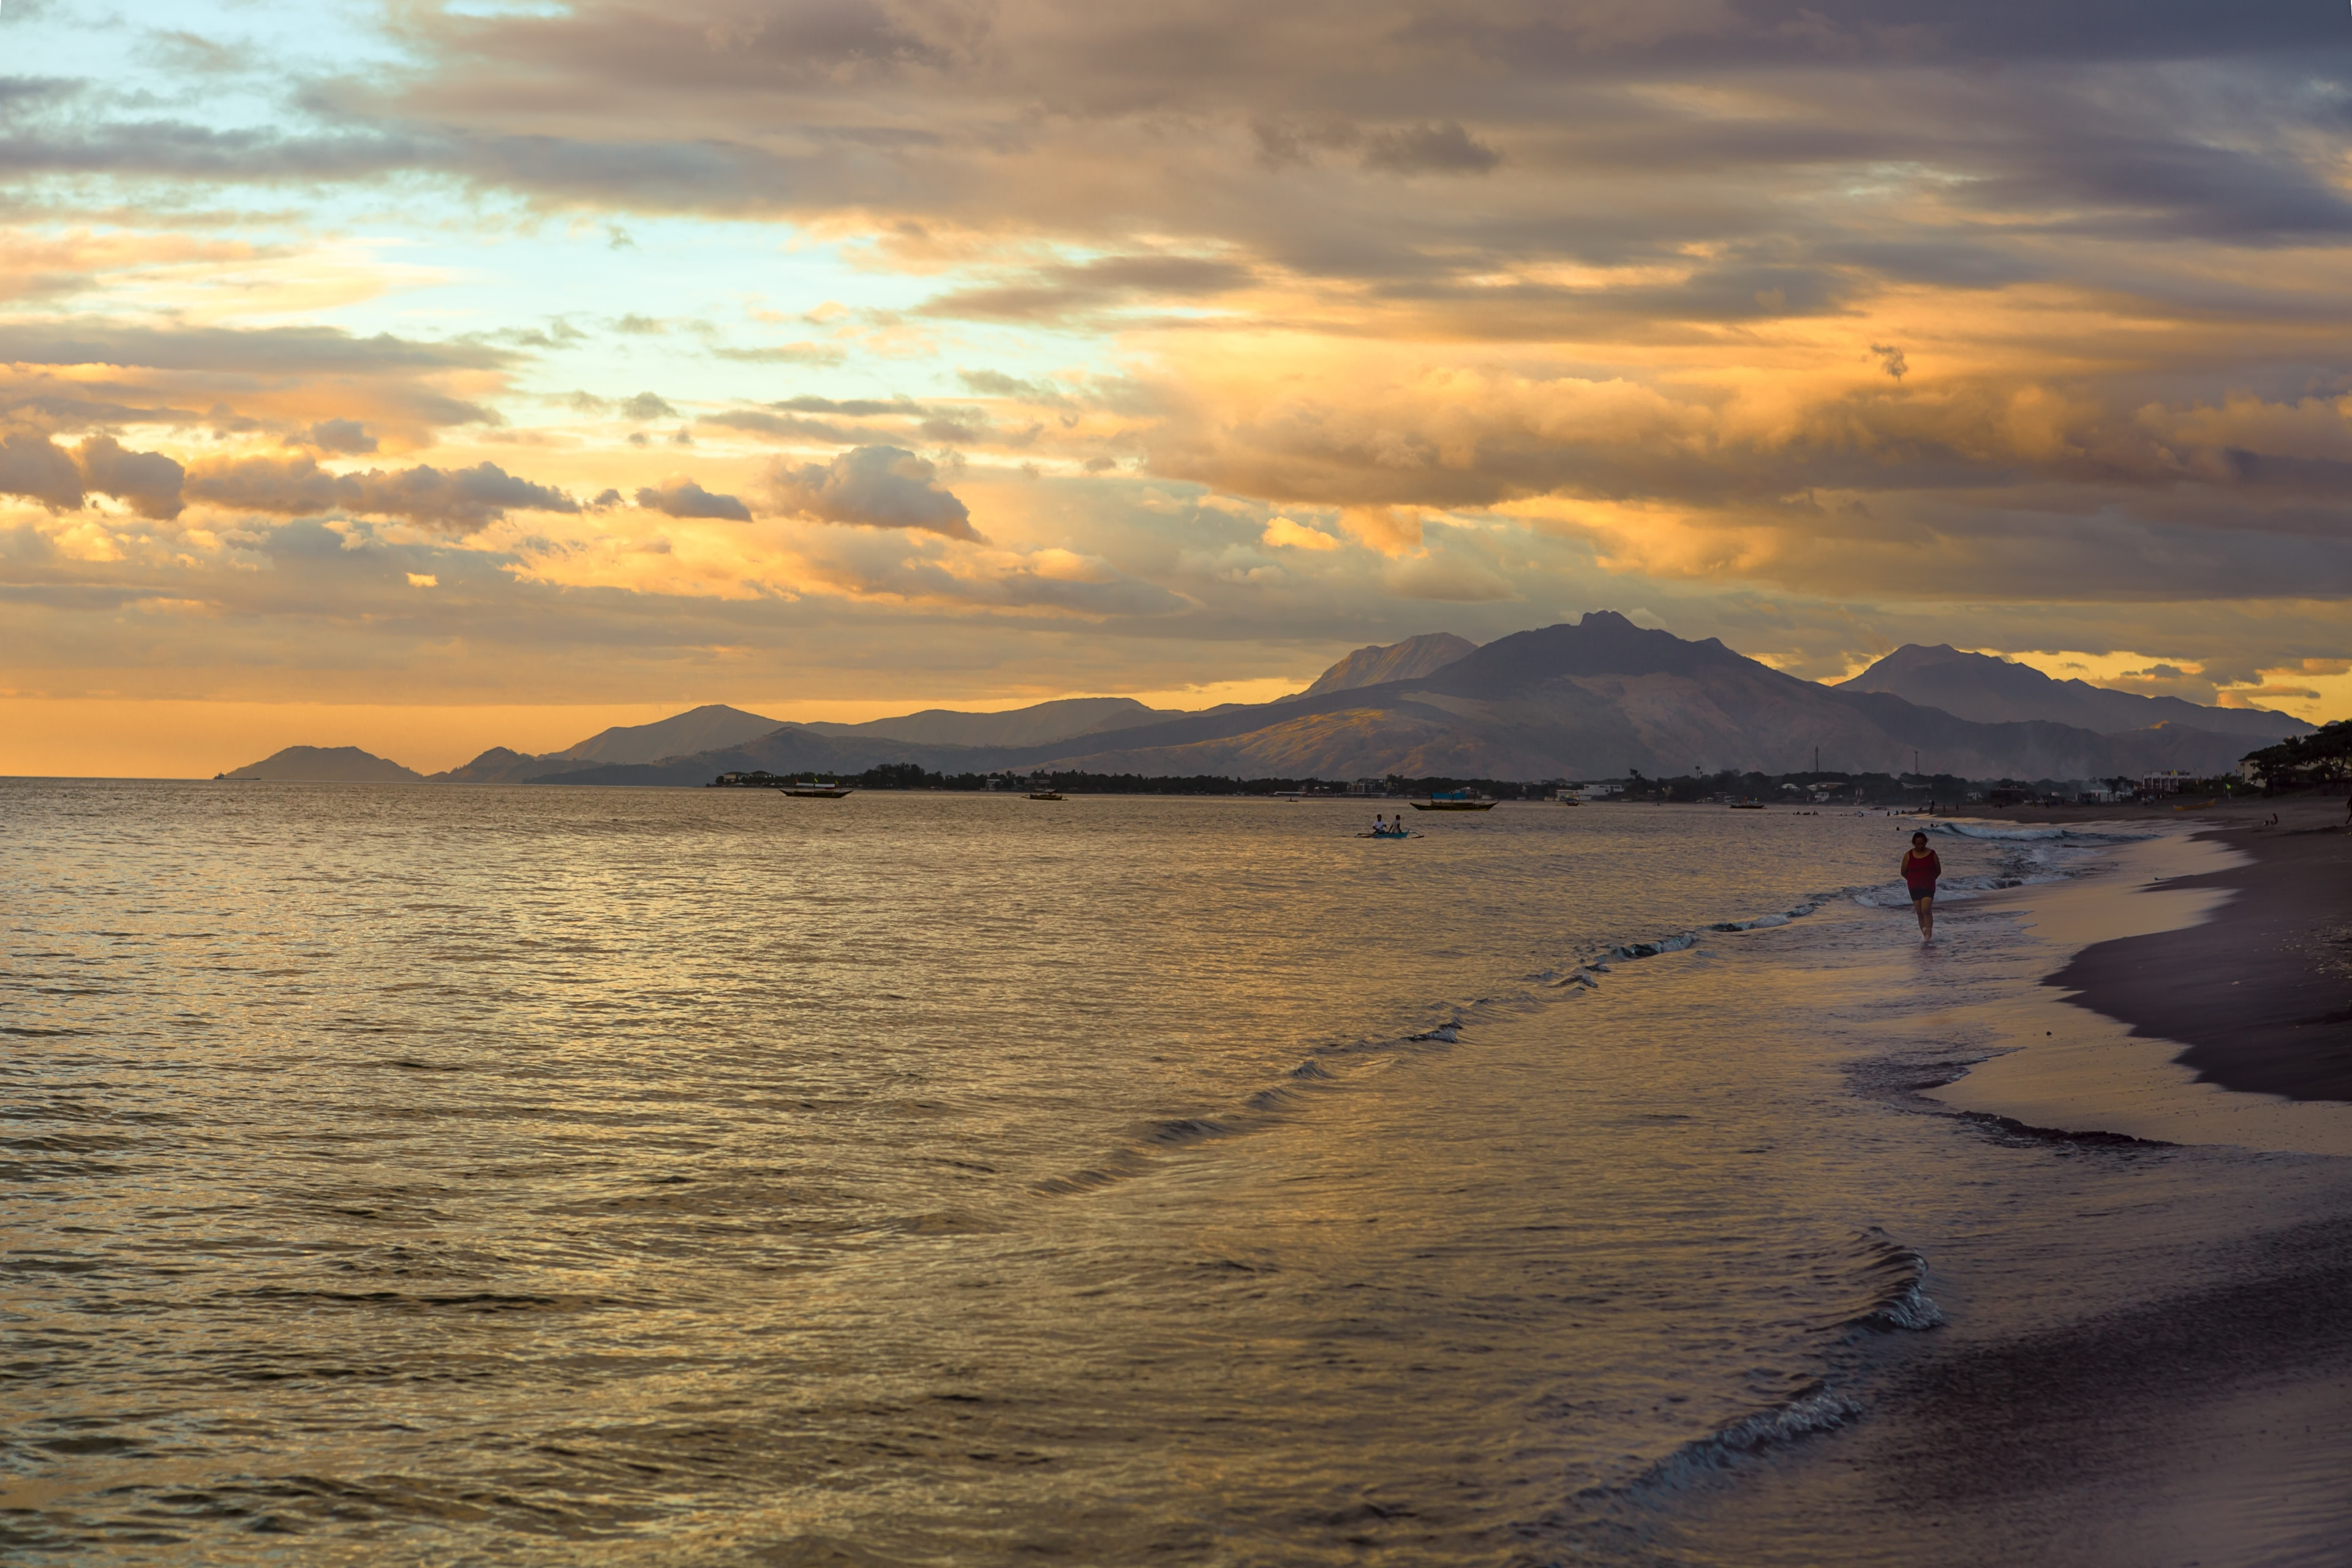 Morong, Central Luzon, Philippines